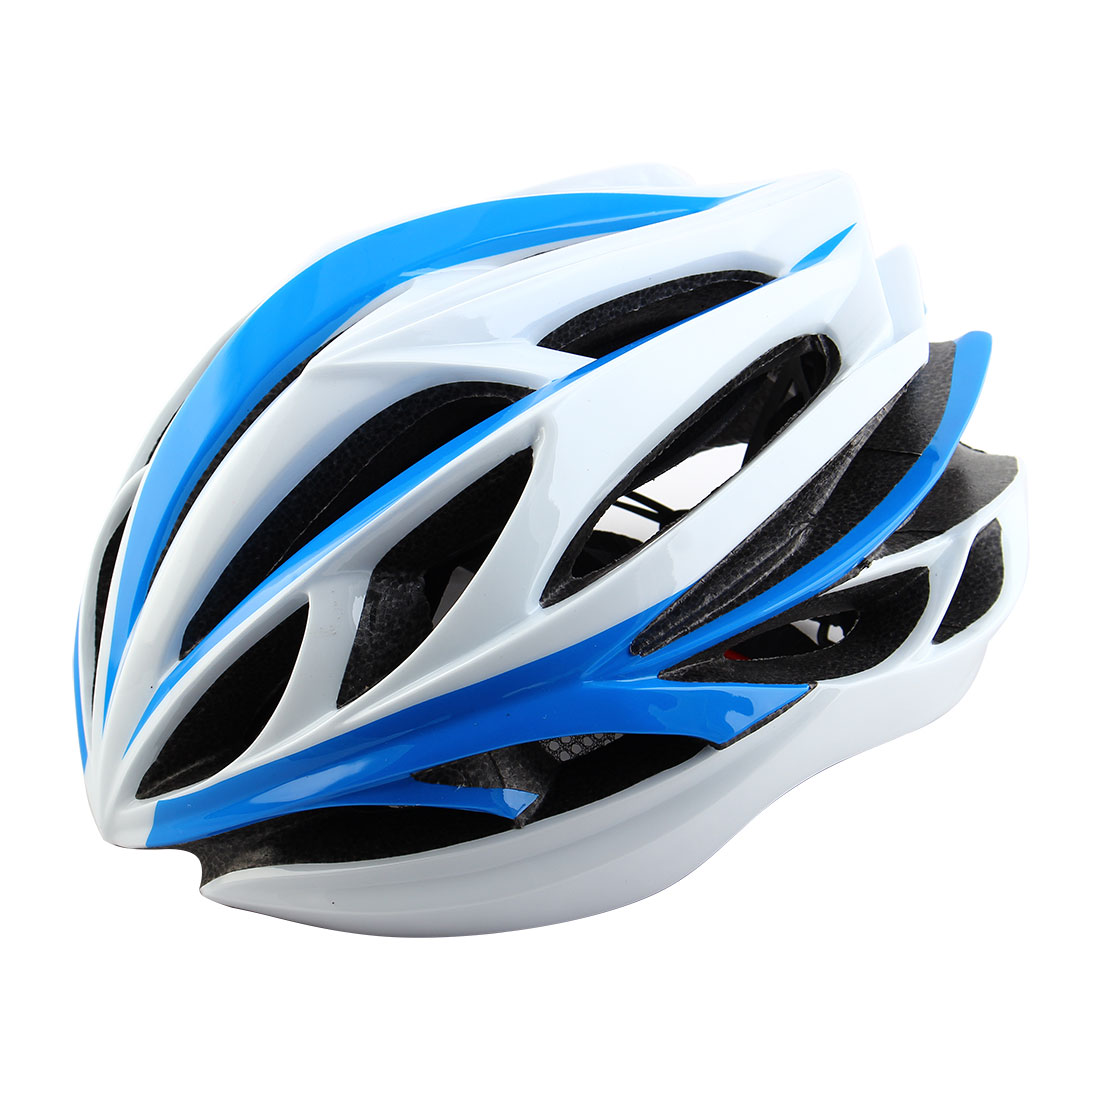 Patent Authorized Adult Unisex 22 Holes Cycling Cap Bicycle Hat Safety Protector Adjustable Bike Helmet Blue